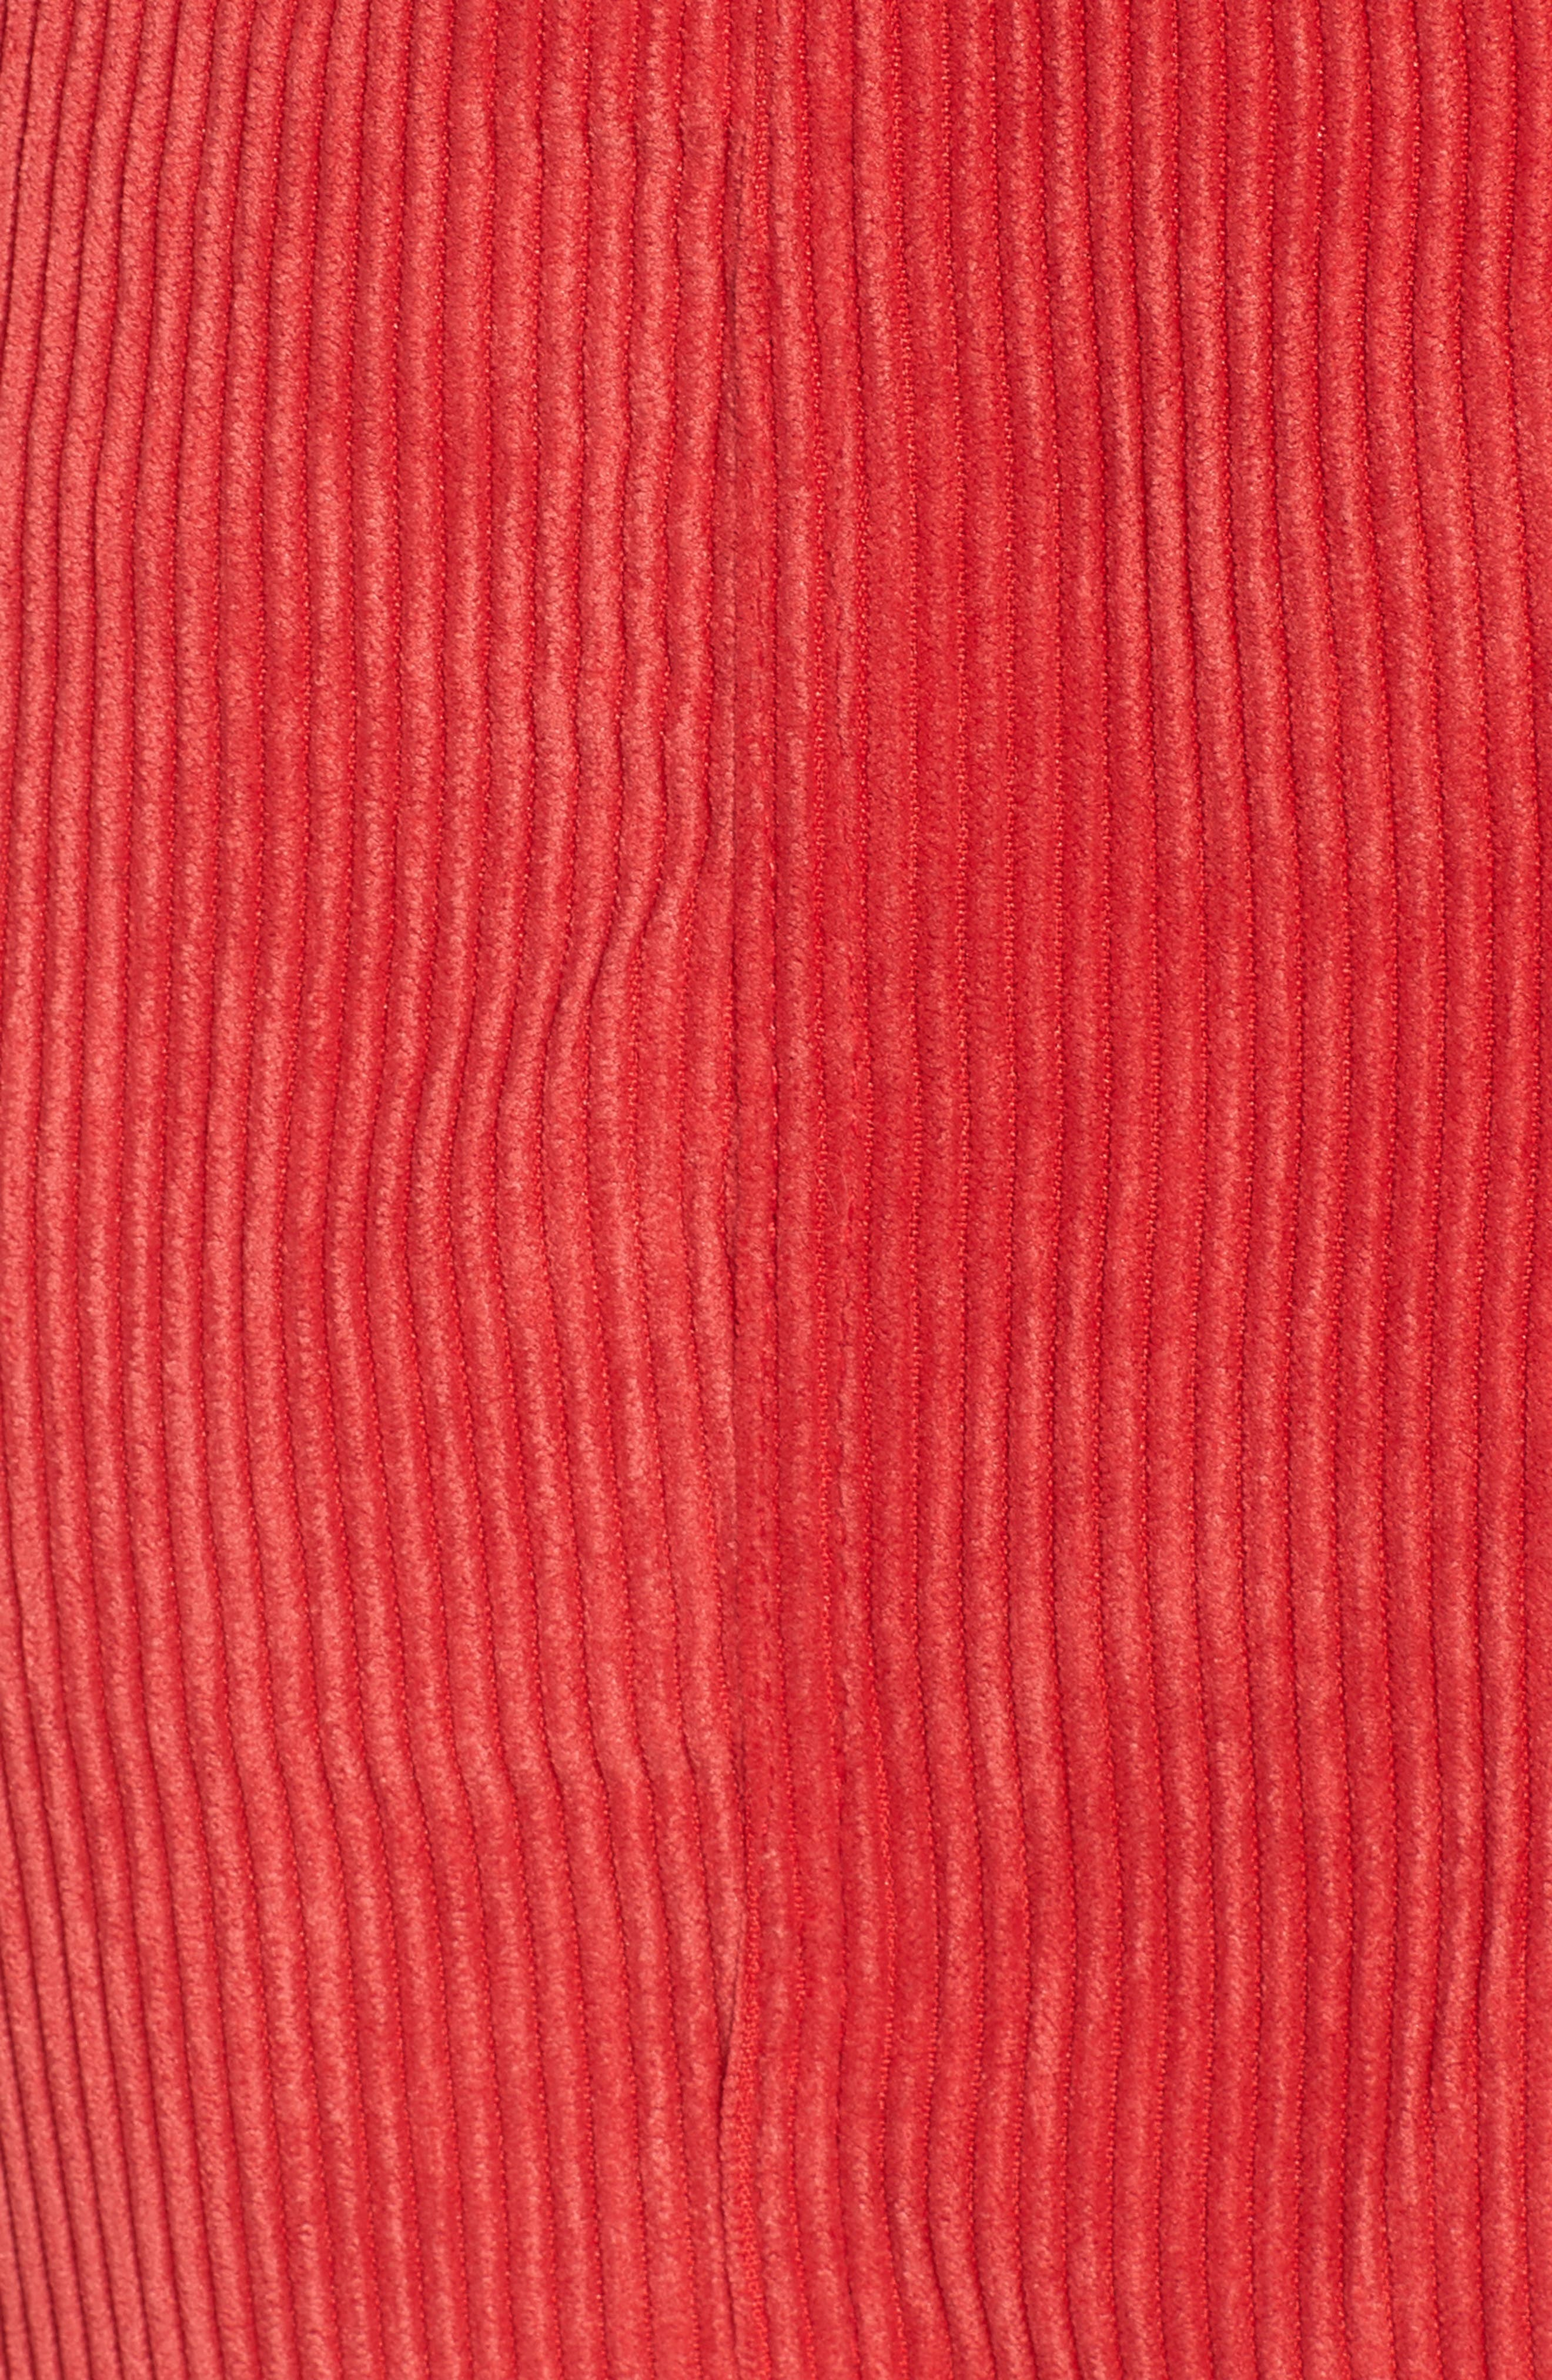 Button Front Corduroy Dress,                             Alternate thumbnail 5, color,                             Red